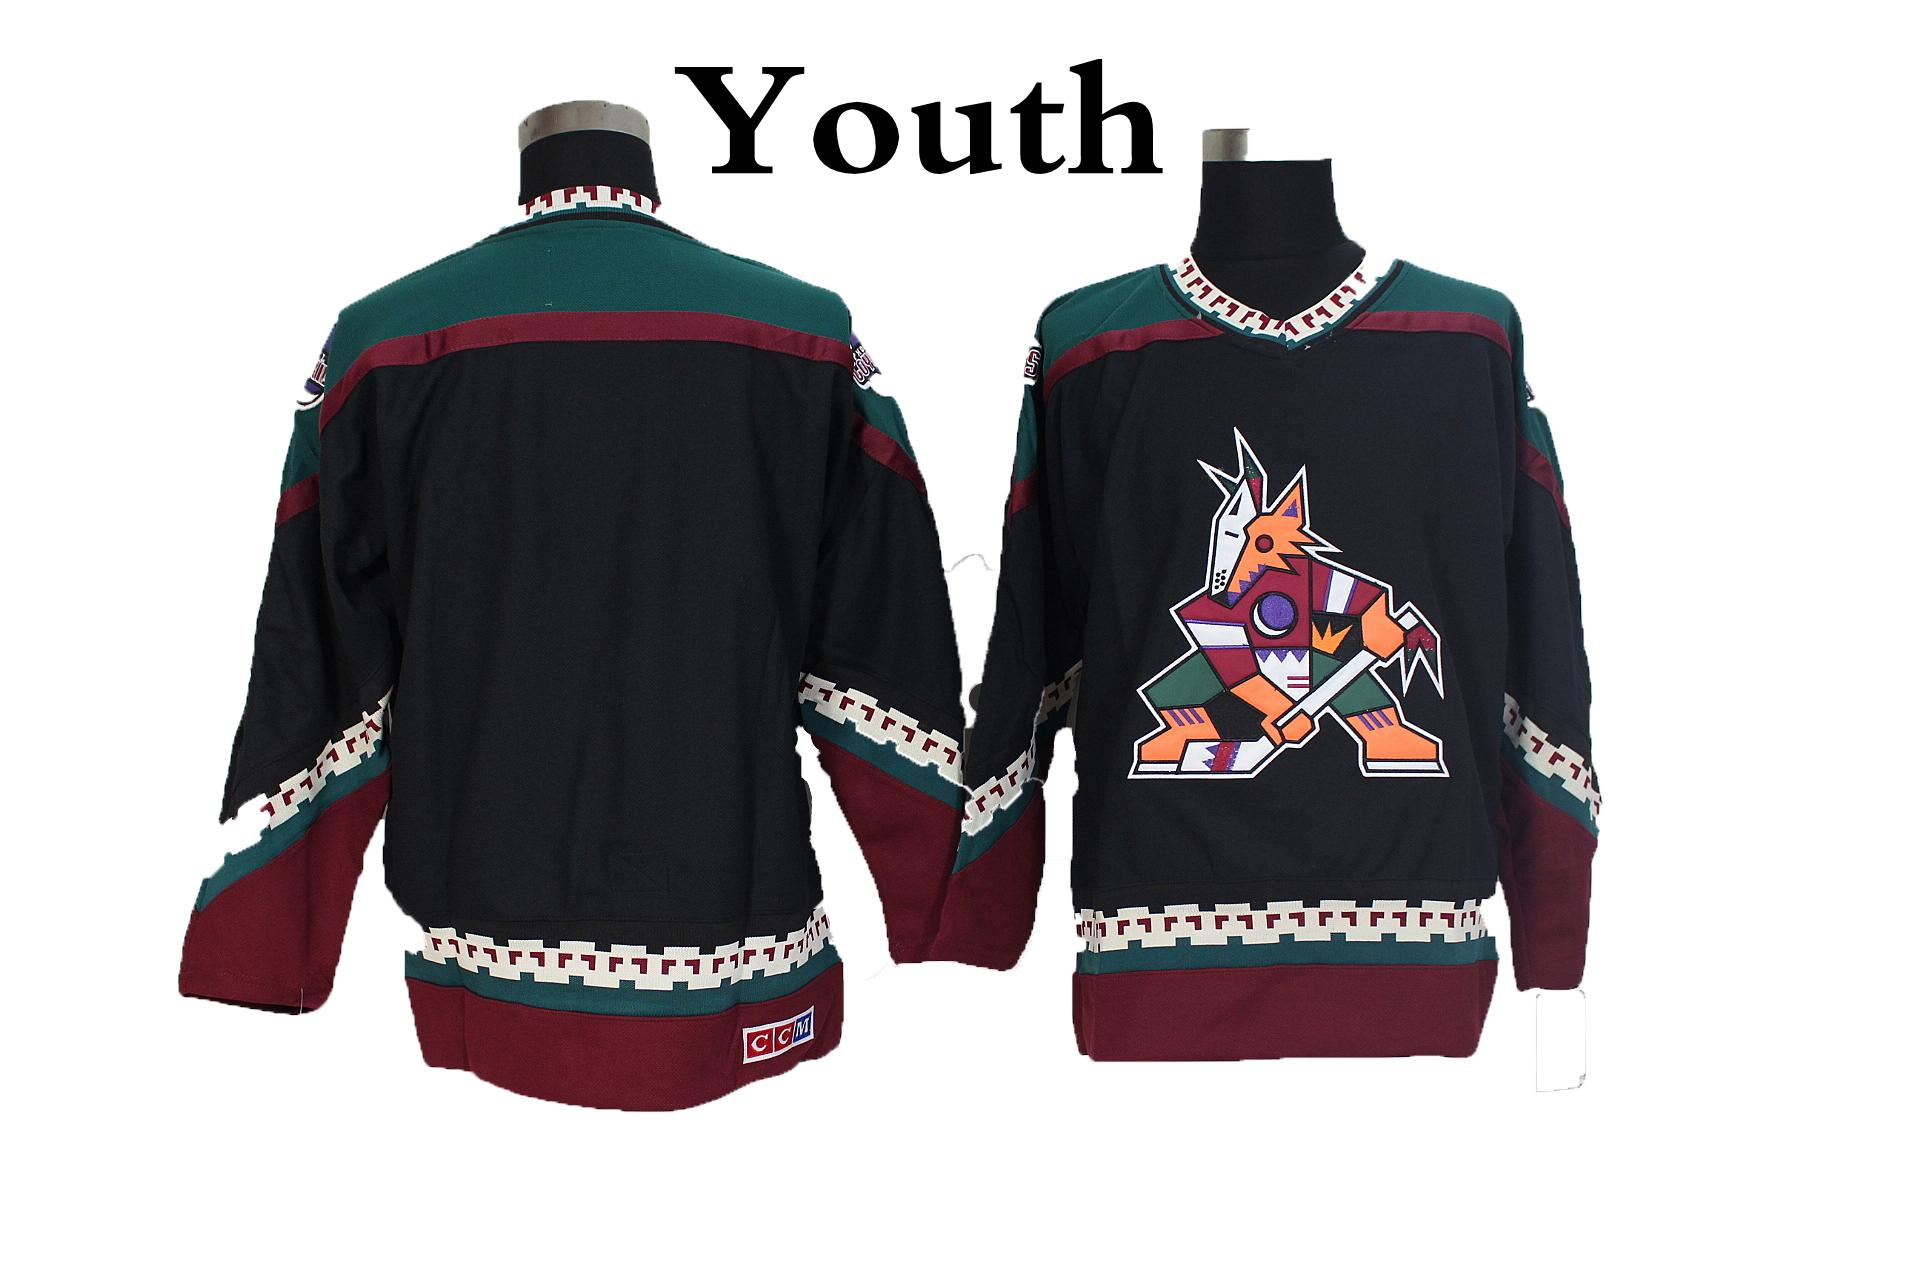 best loved 7d661 4ea6f Youth Phoenix Coyotes Hockey Jerseys Black Blank Vintage Arizona Coyotes  Retro Kids Jerseys CCM Stitched boys Hockey Shirts Cheap